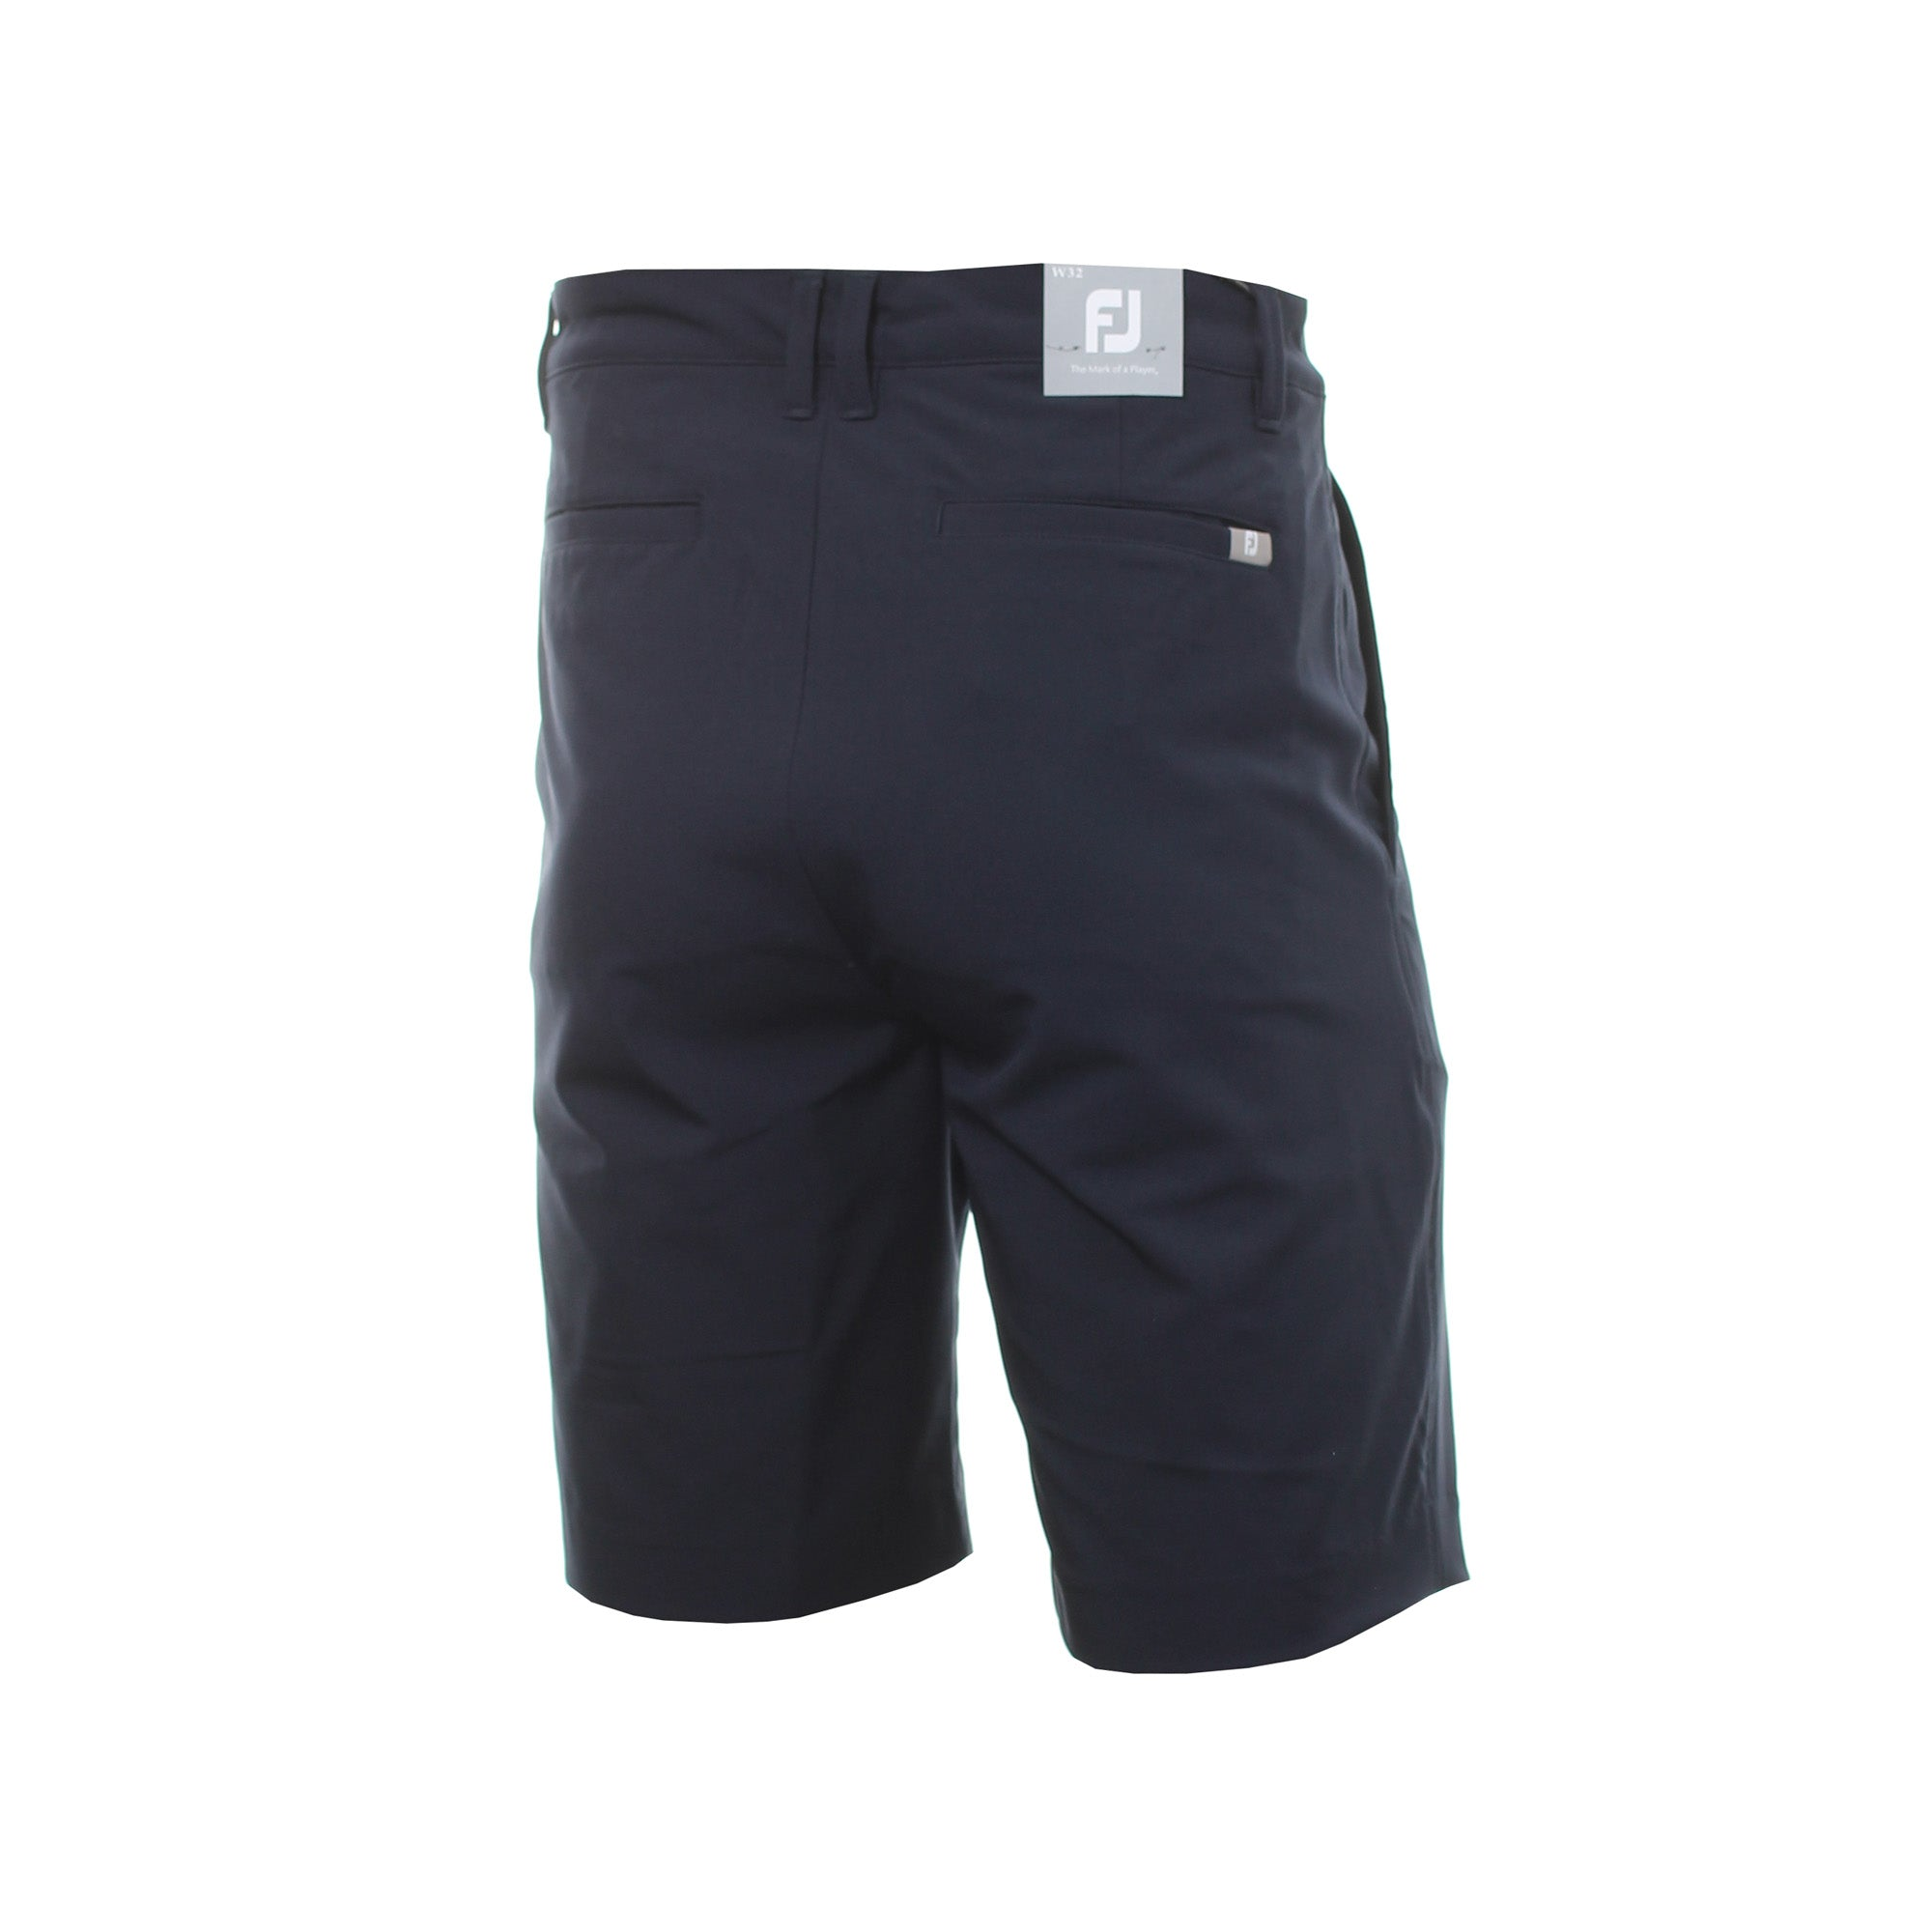 FootJoy FJ Performance Short 90179